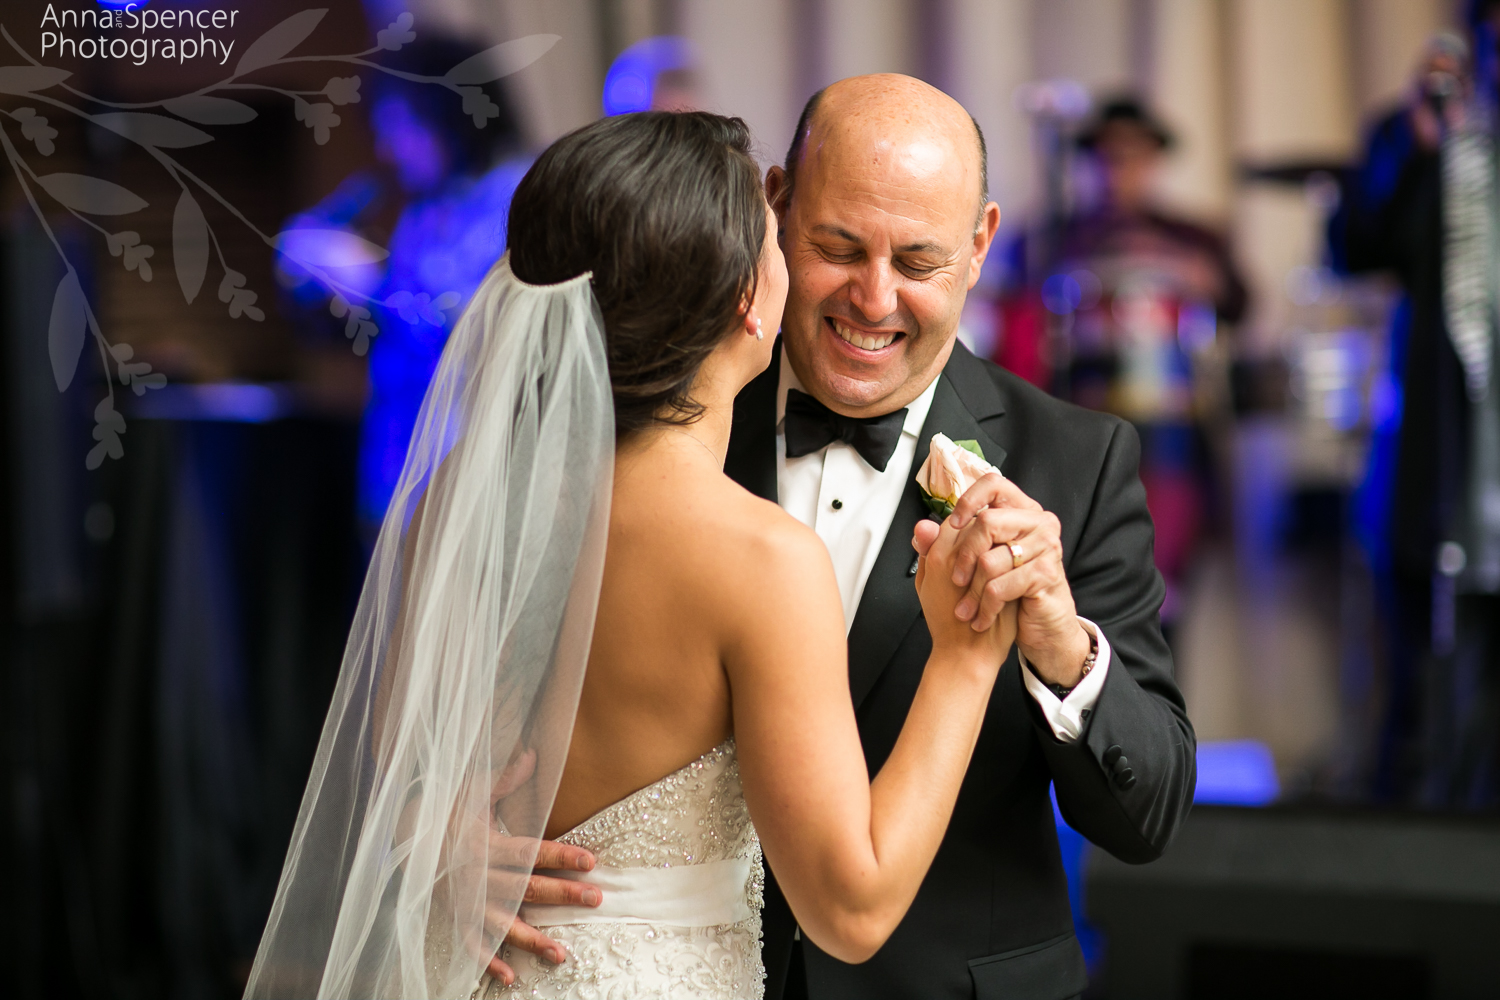 Wedding First Dance at the American Spirit Works Stave Room